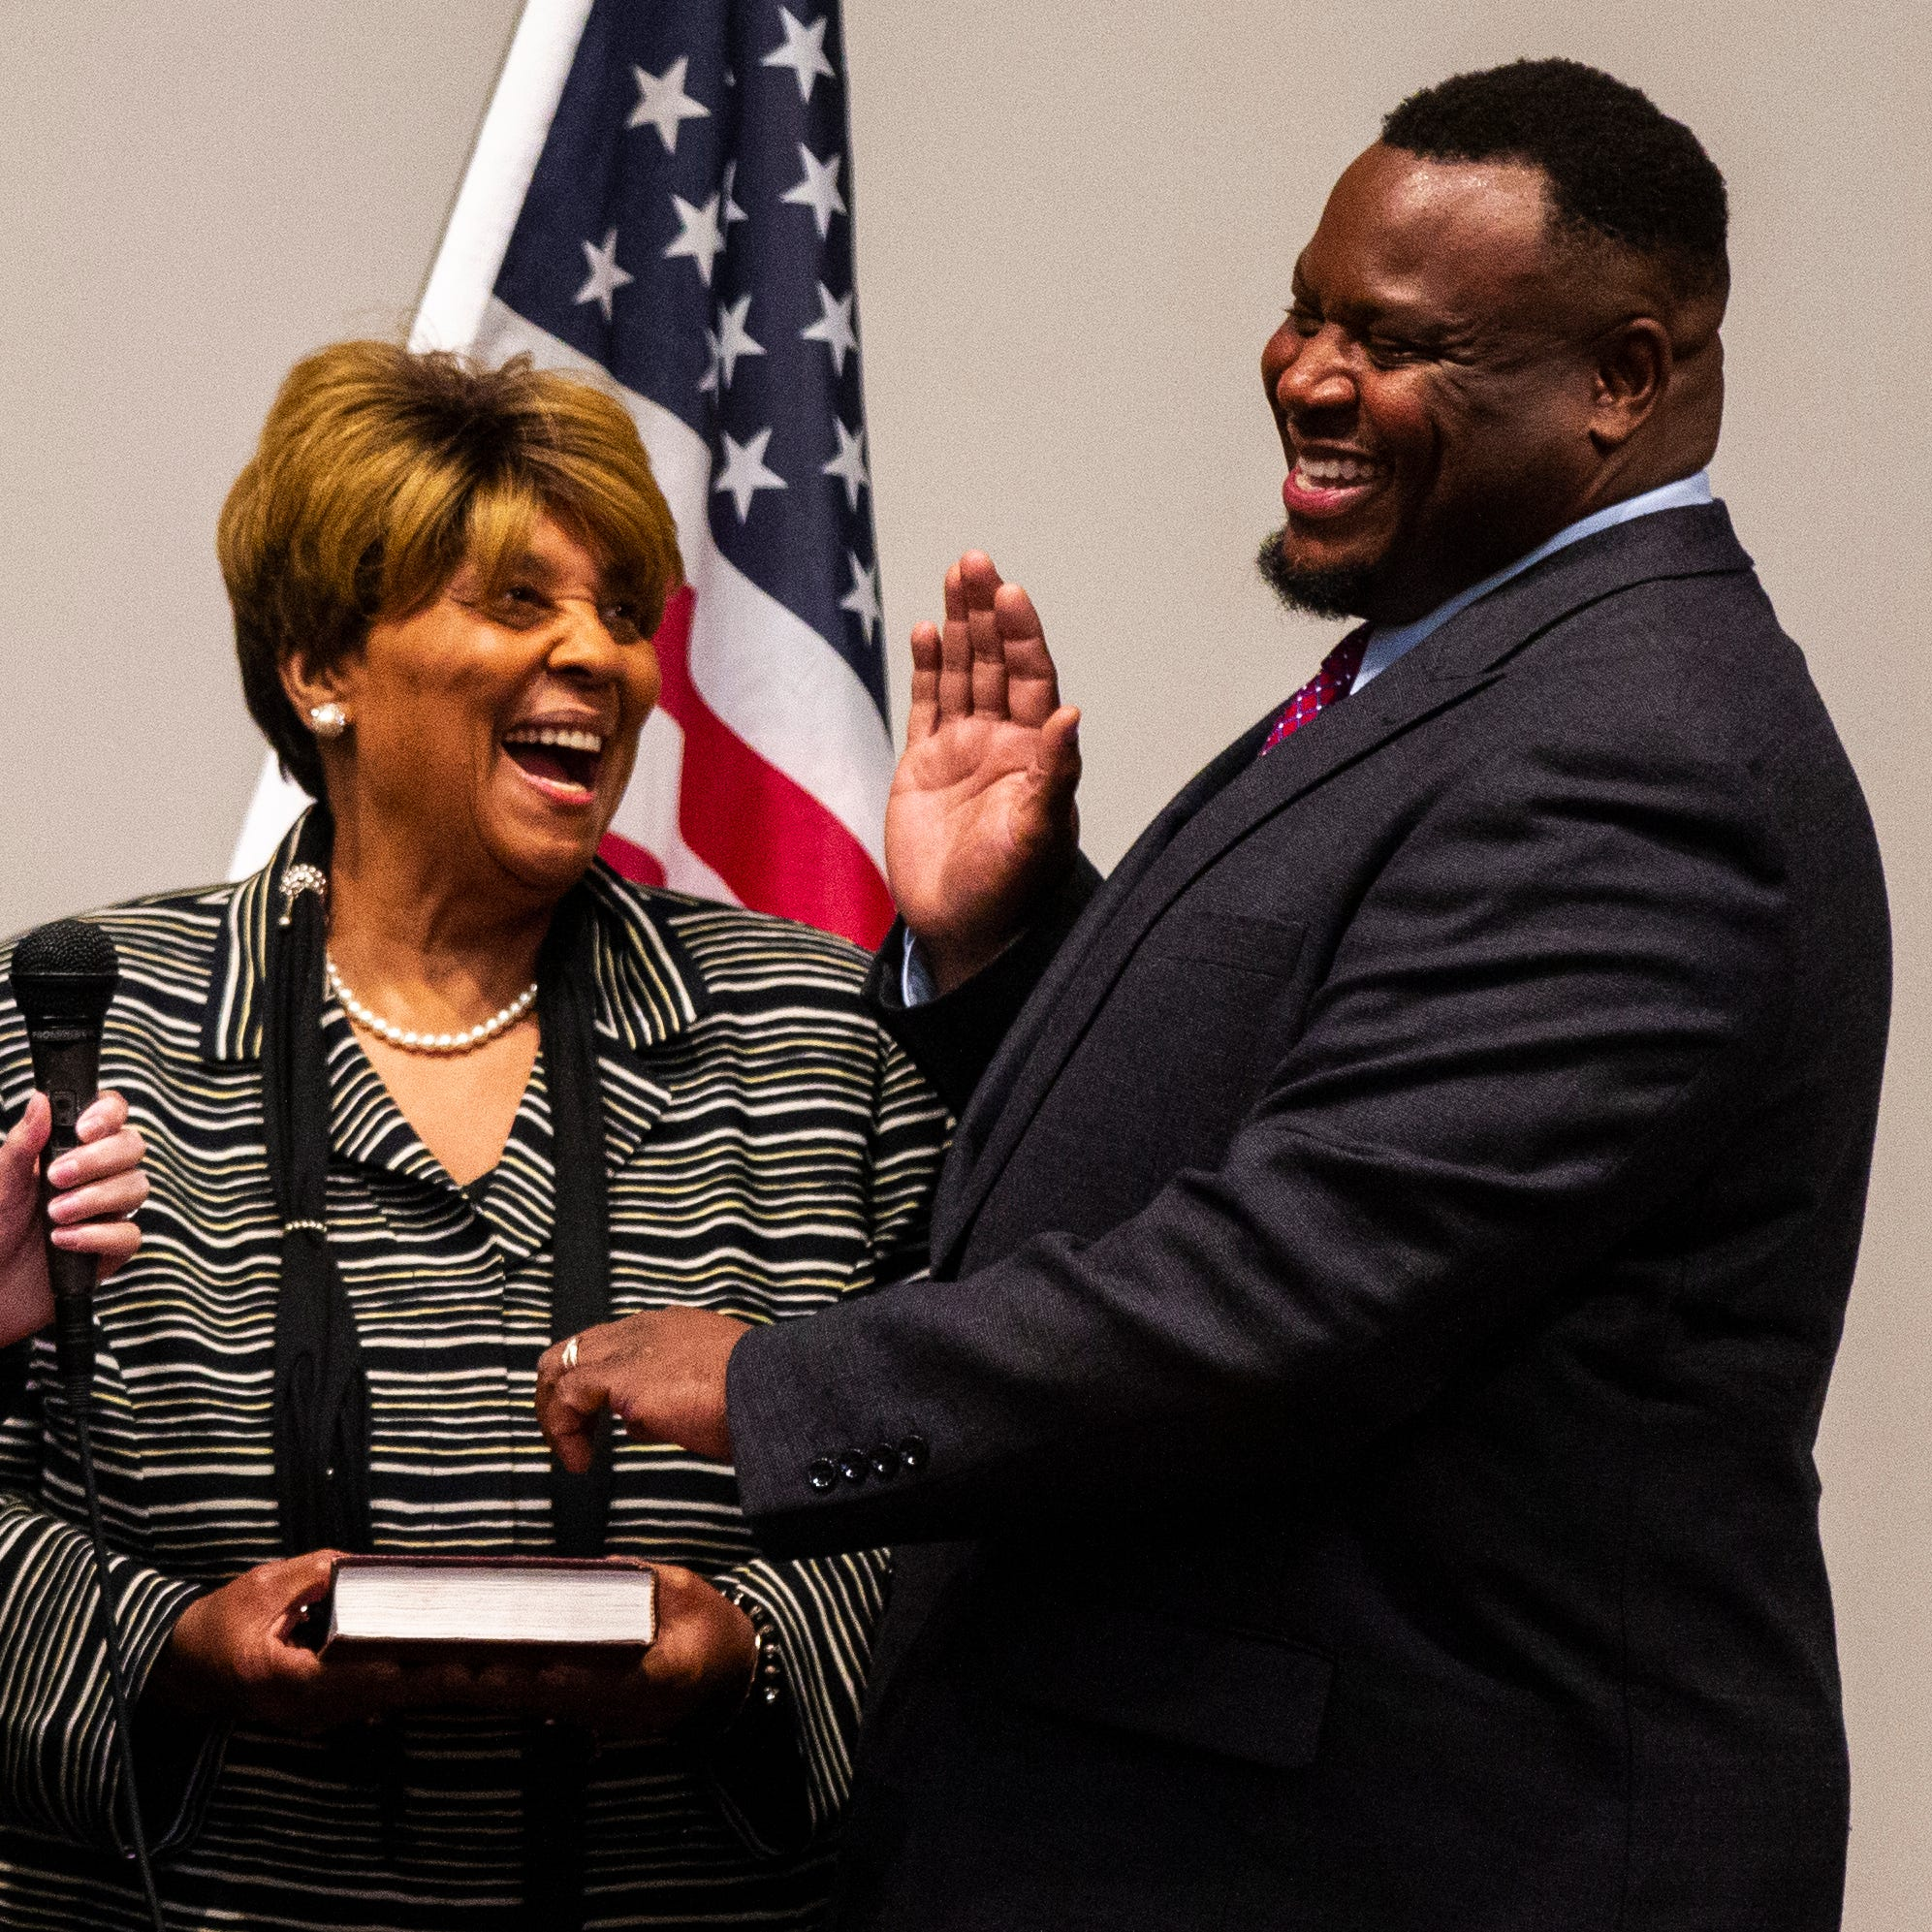 'You've got that name': Teague takes the oath of office